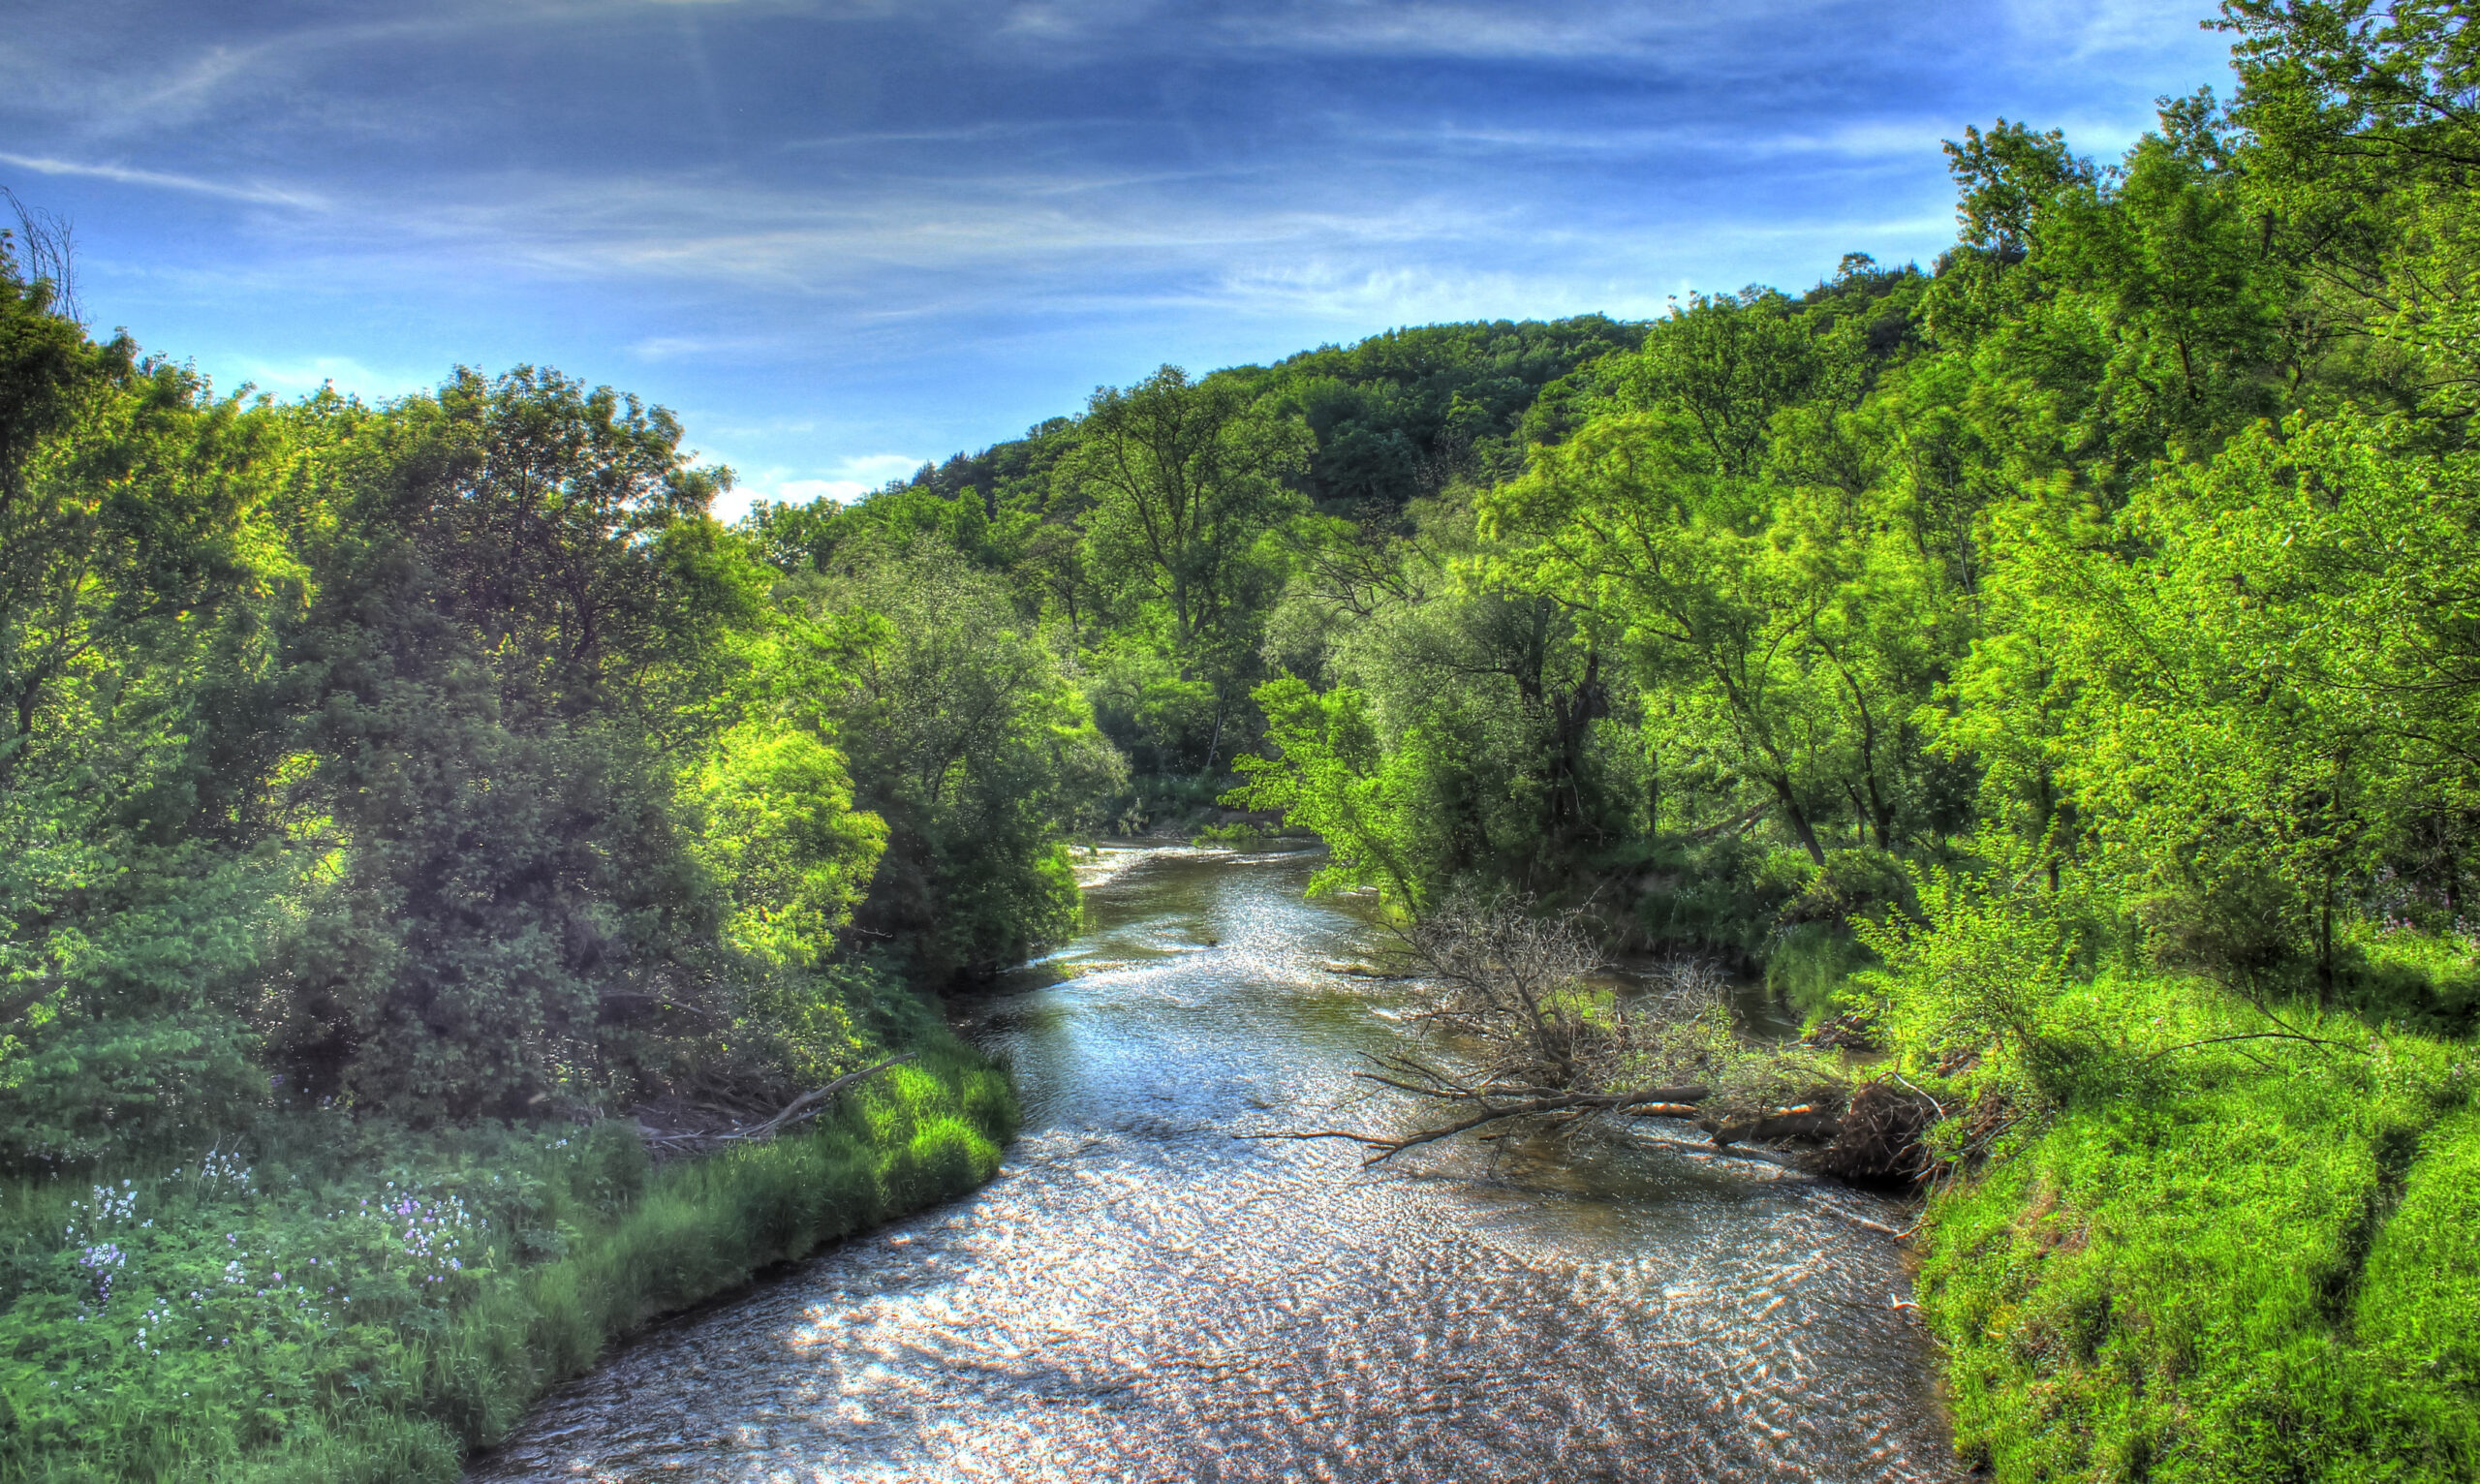 wisconsin-kinnickinnic-state-park-upstream-at-tje-kinnickinnic-river